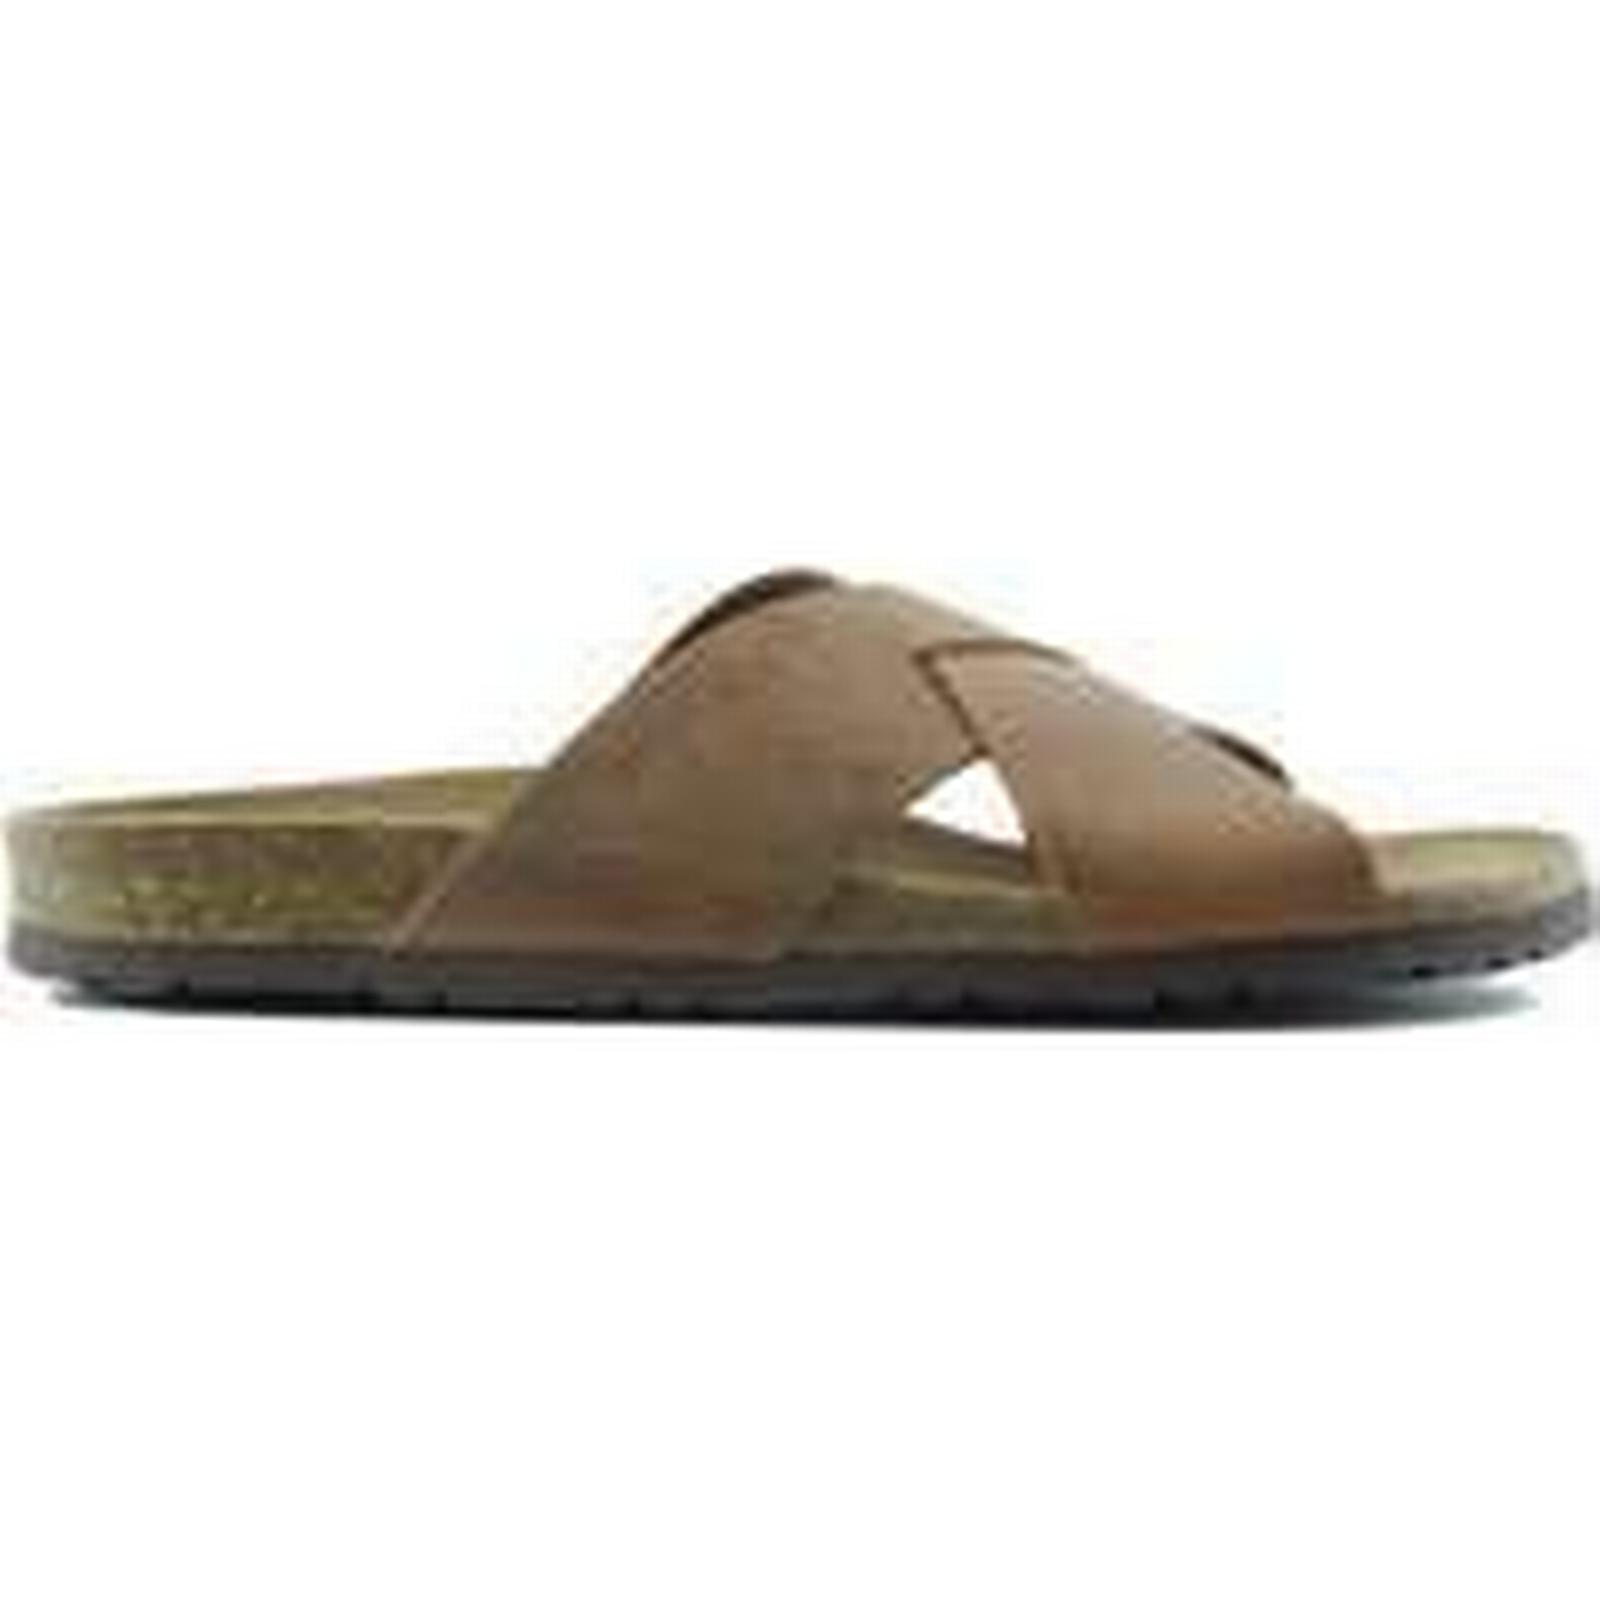 Spartoo.co.uk Interbios S Shoes AQUILES 9509 men's Mules / Casual Shoes S in Brown 8e4623